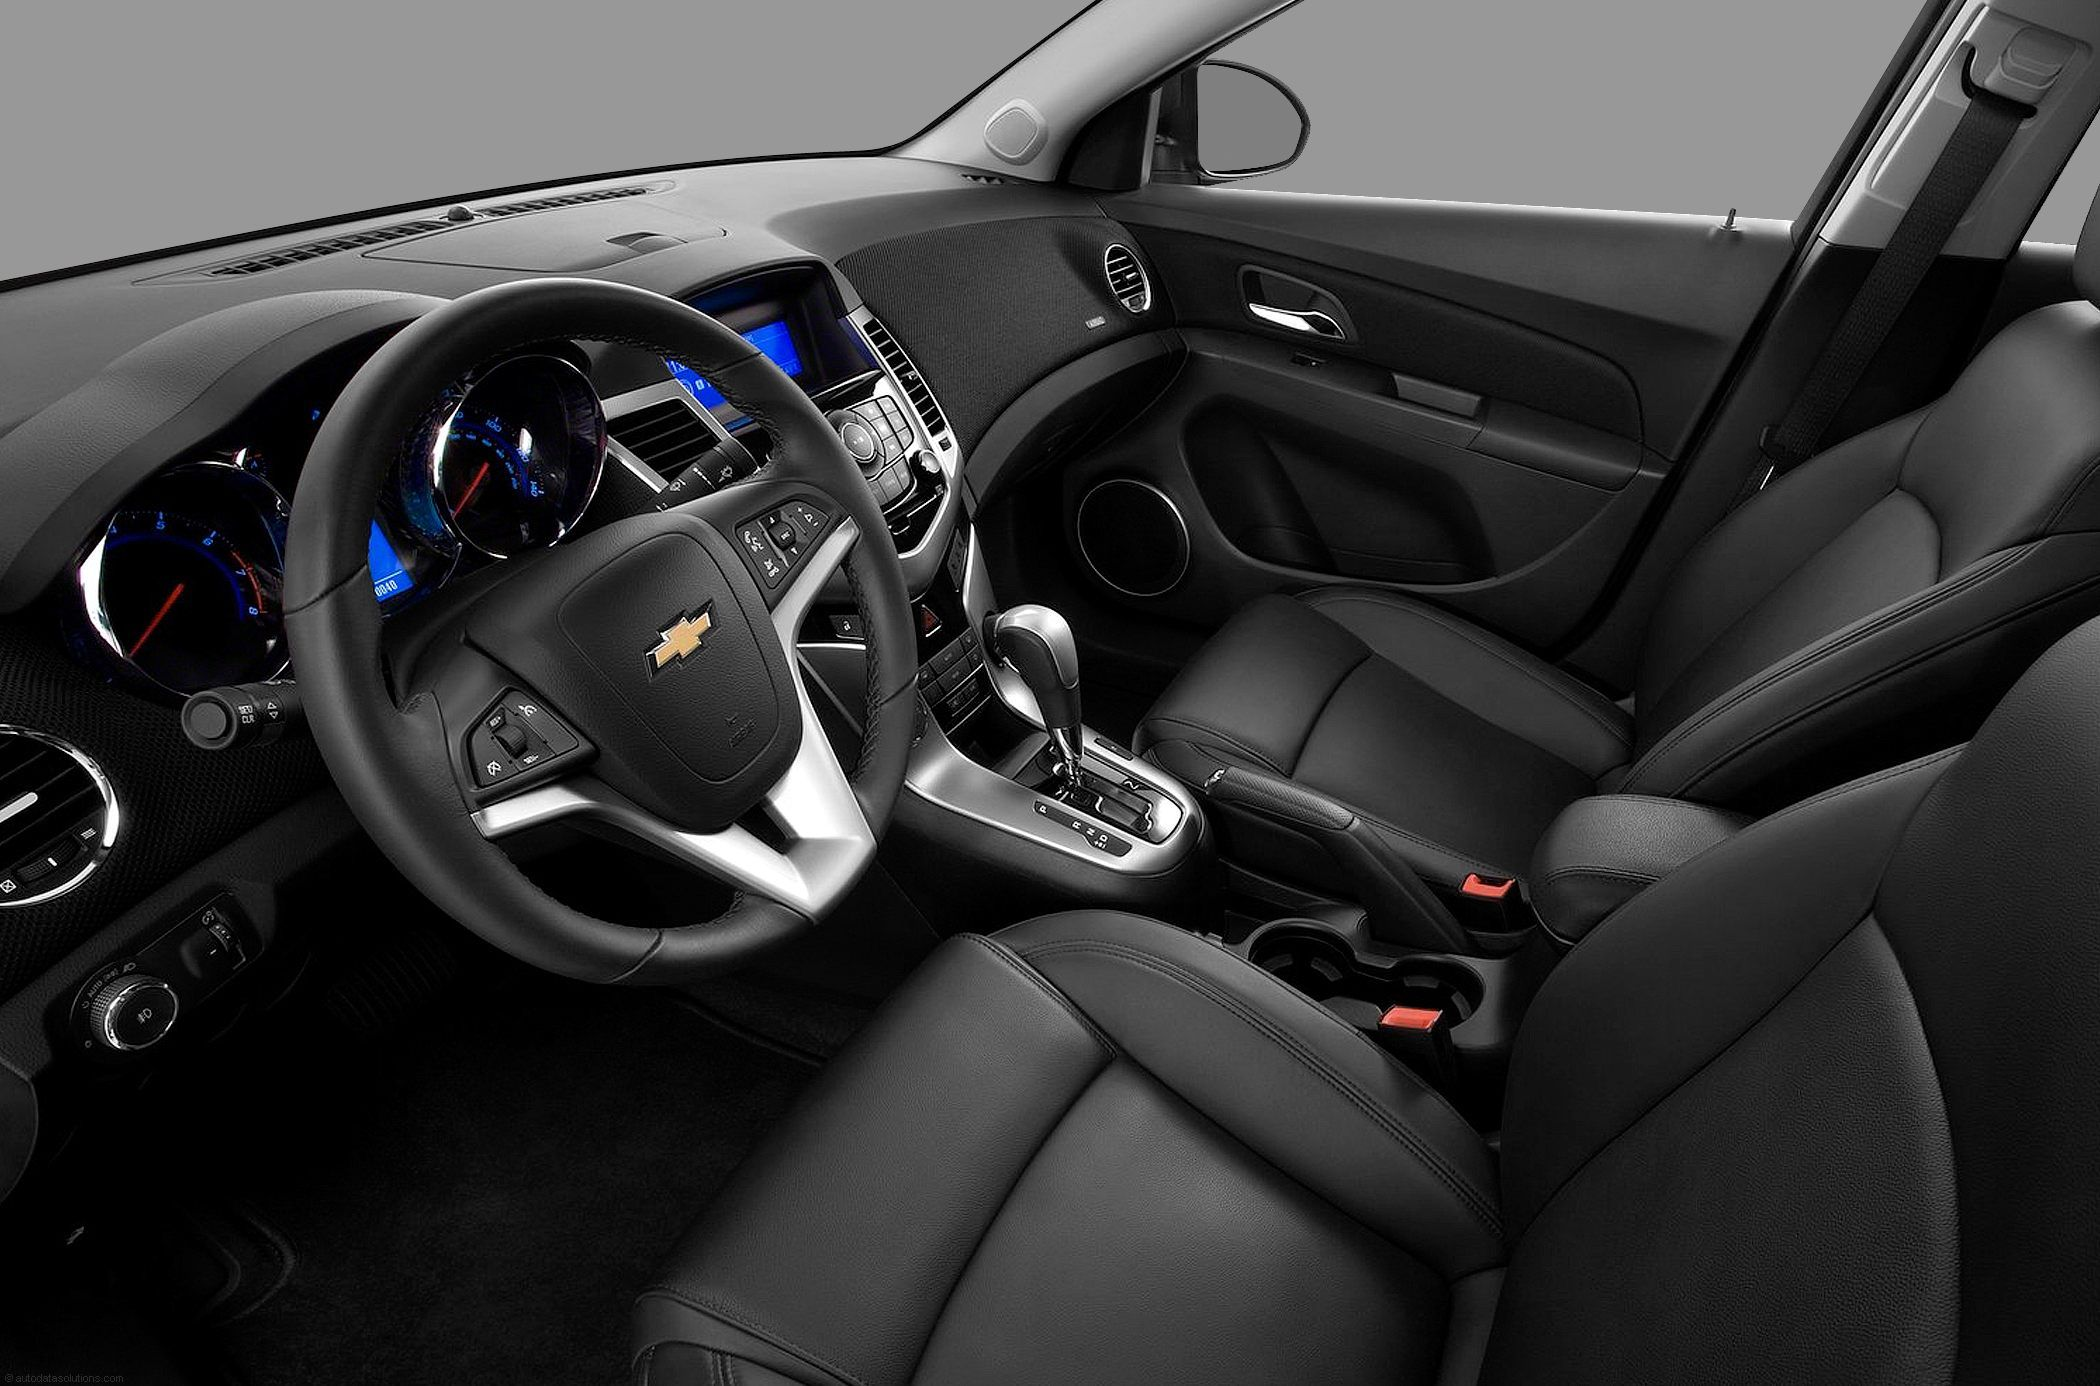 Are you a fan of cloth or leather interiors this chevrolet cruze with available leather